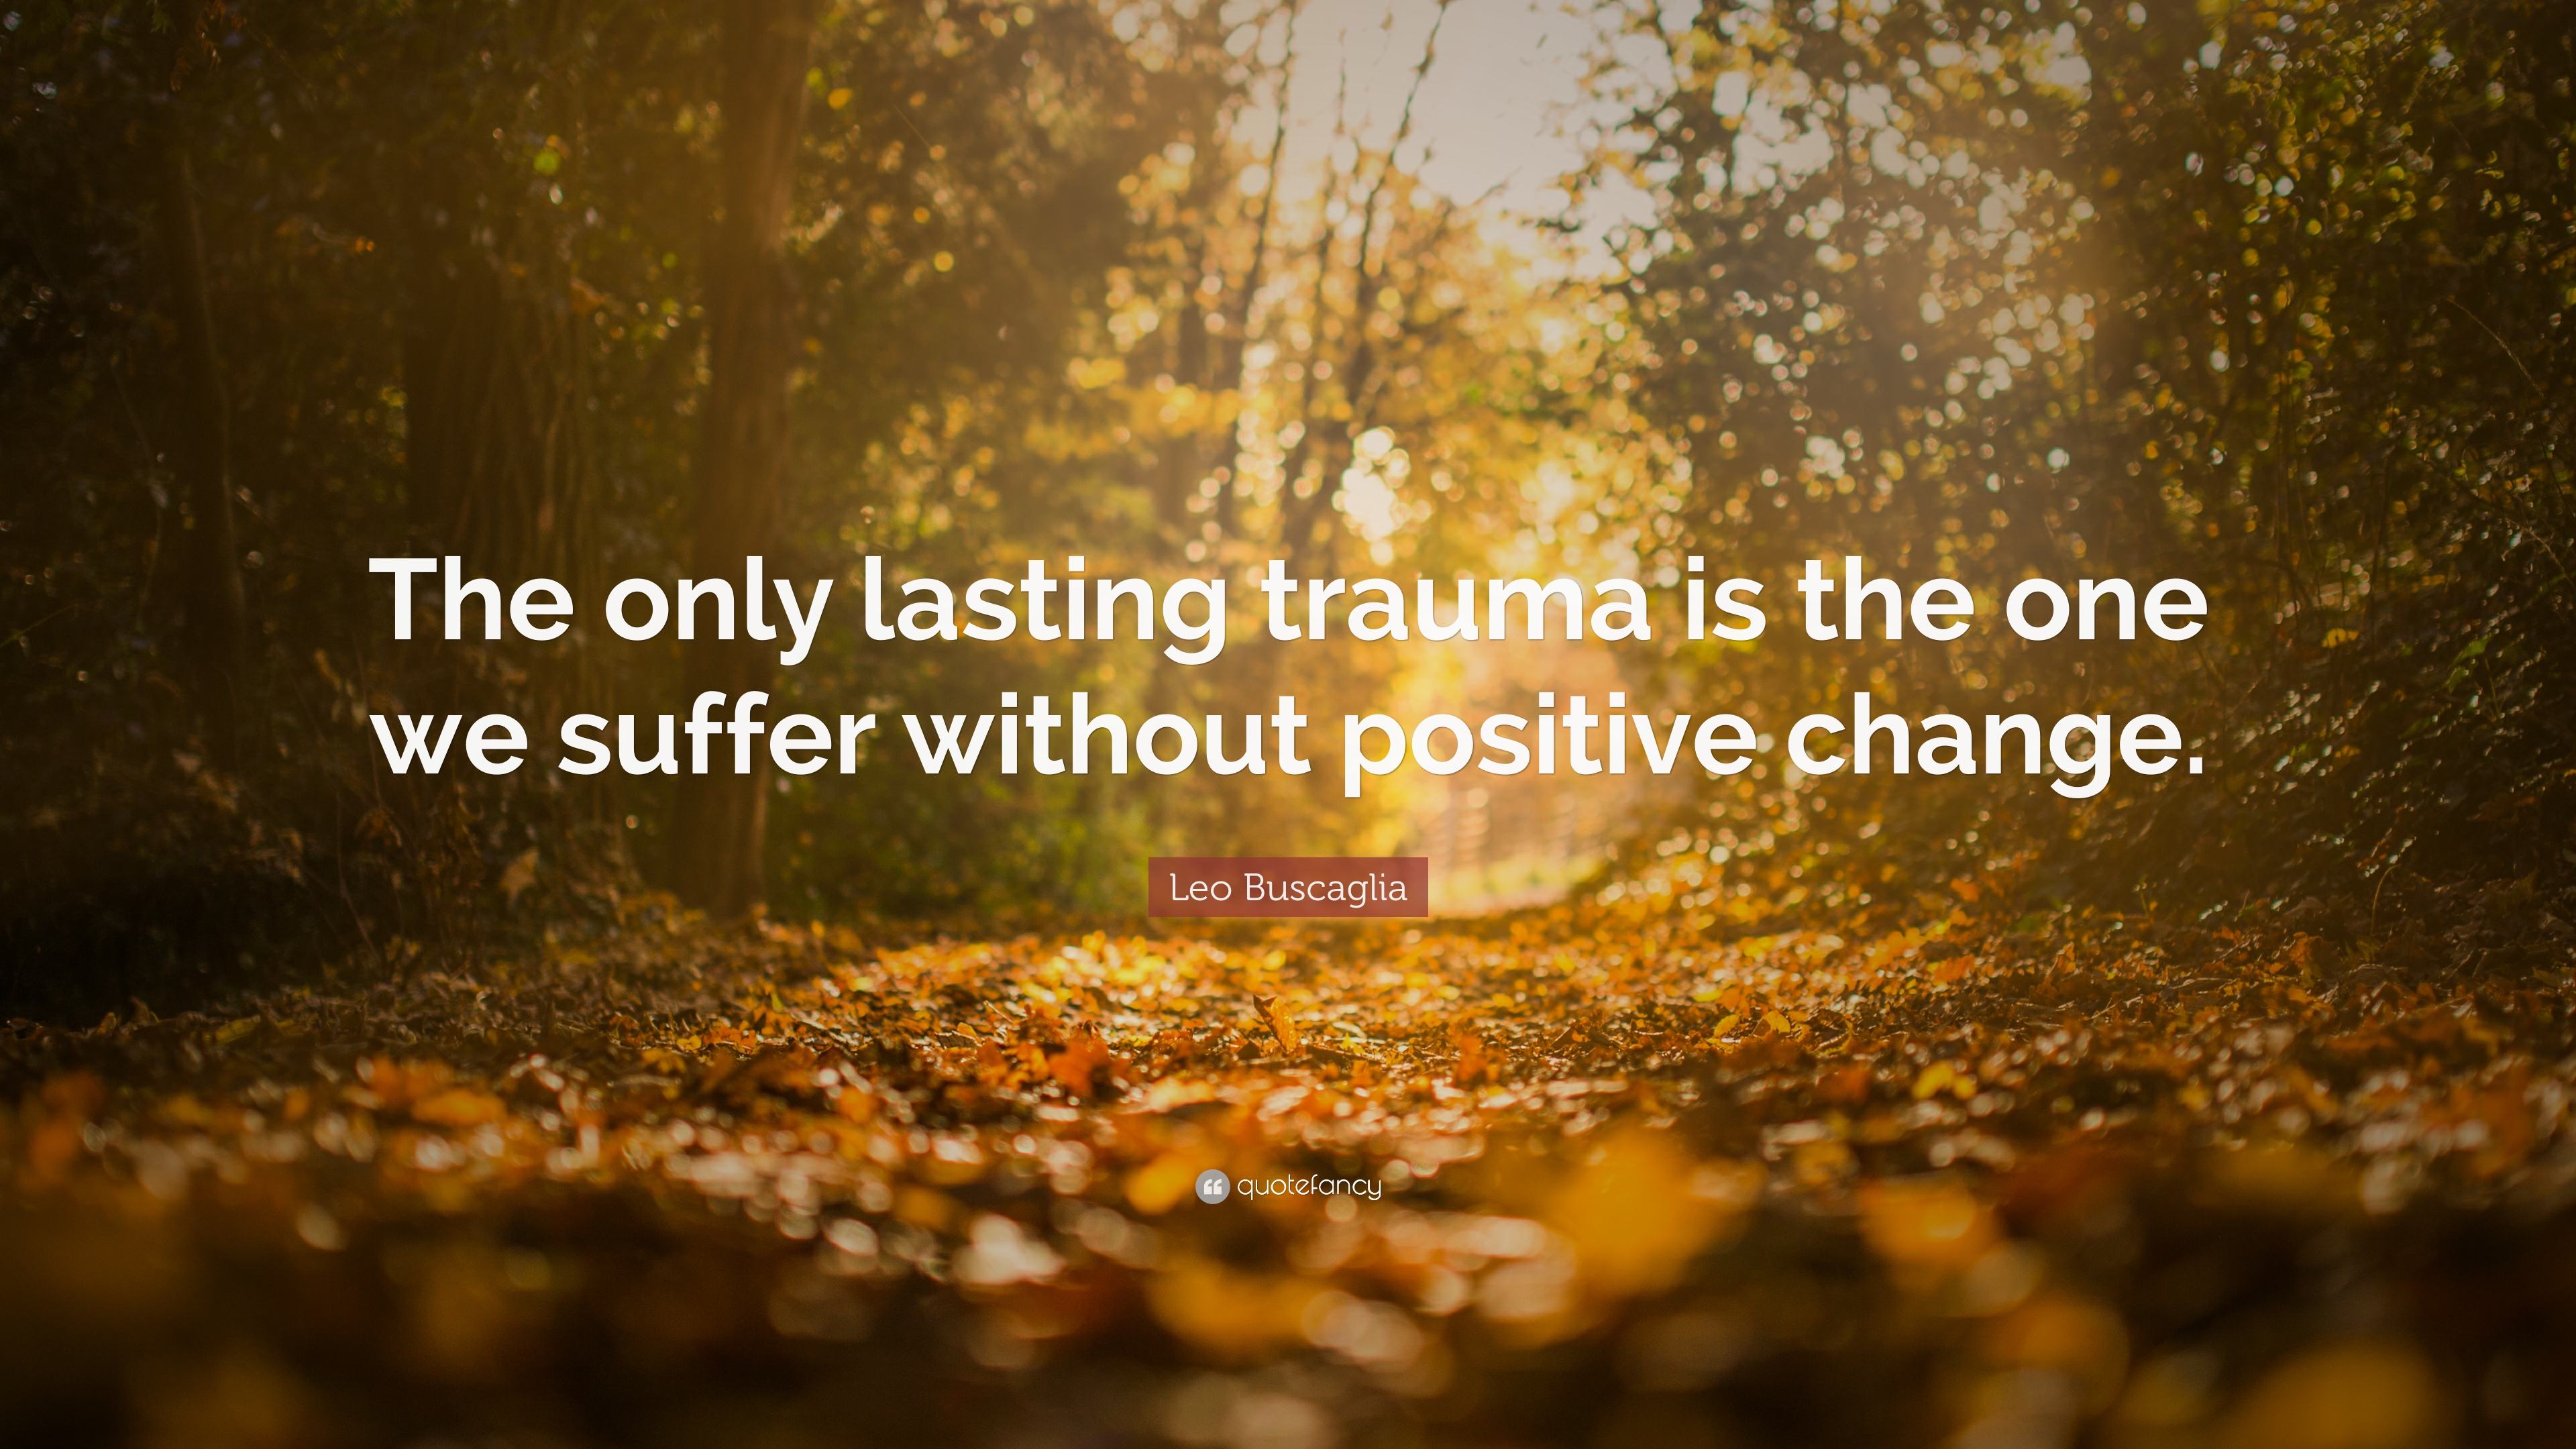 Awesome Leo Buscaglia Quote: U201cThe Only Lasting Trauma Is The One We Suffer Without  Positive